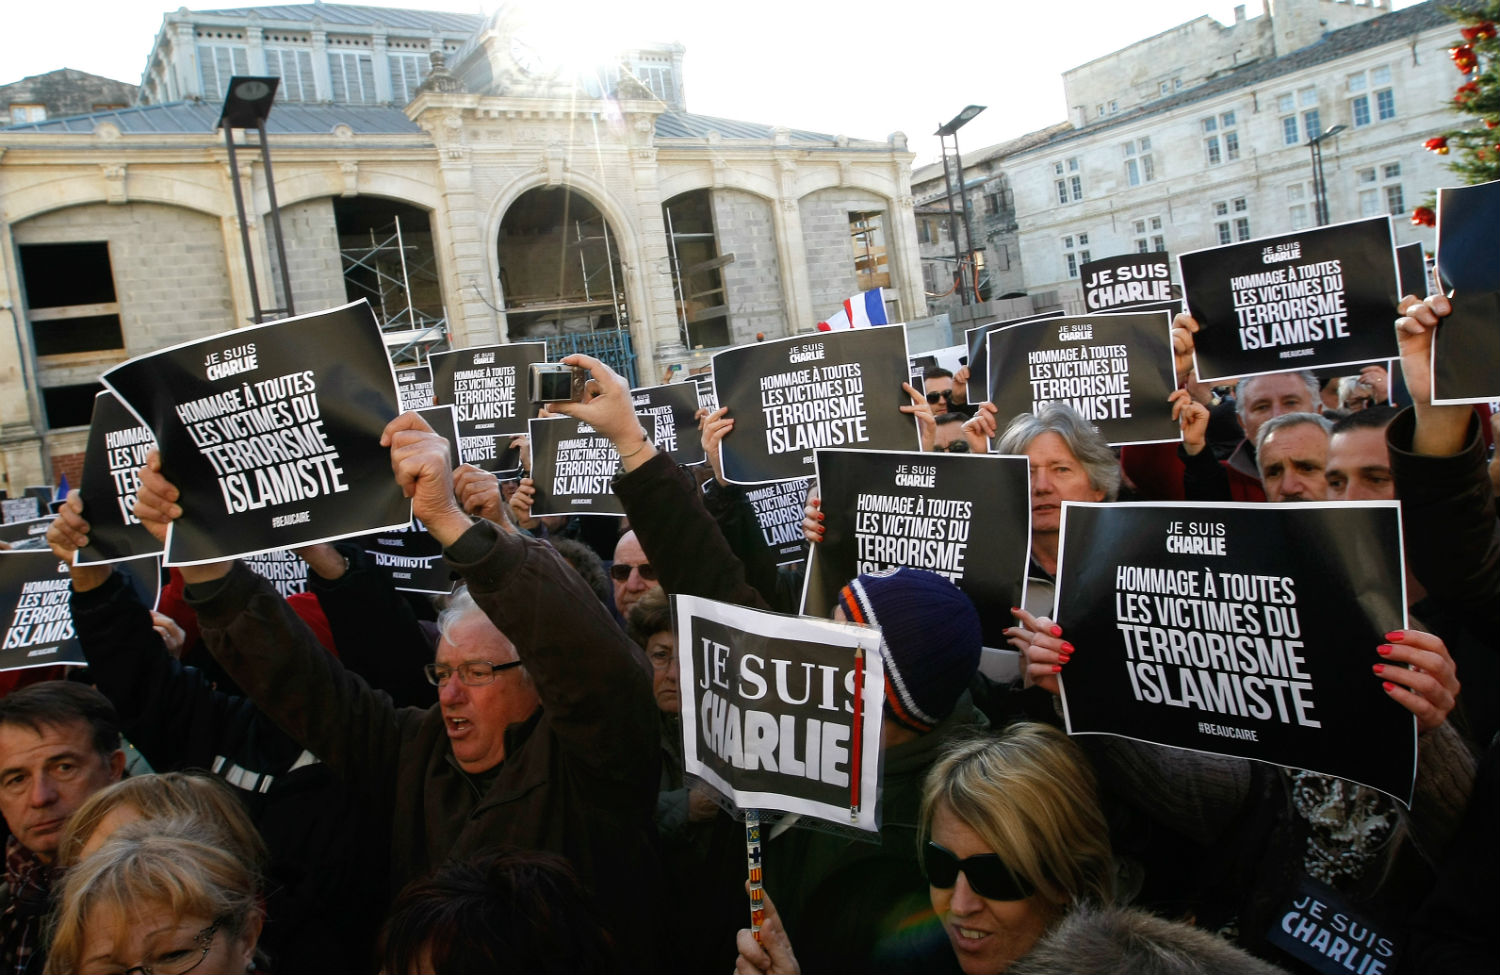 Supporters of Front National leader Marine Le Pen hold placards paying tribute to all the victims of Islamist terrorism during a march on January 11, 2015. (AP Photo/Claude Paris)